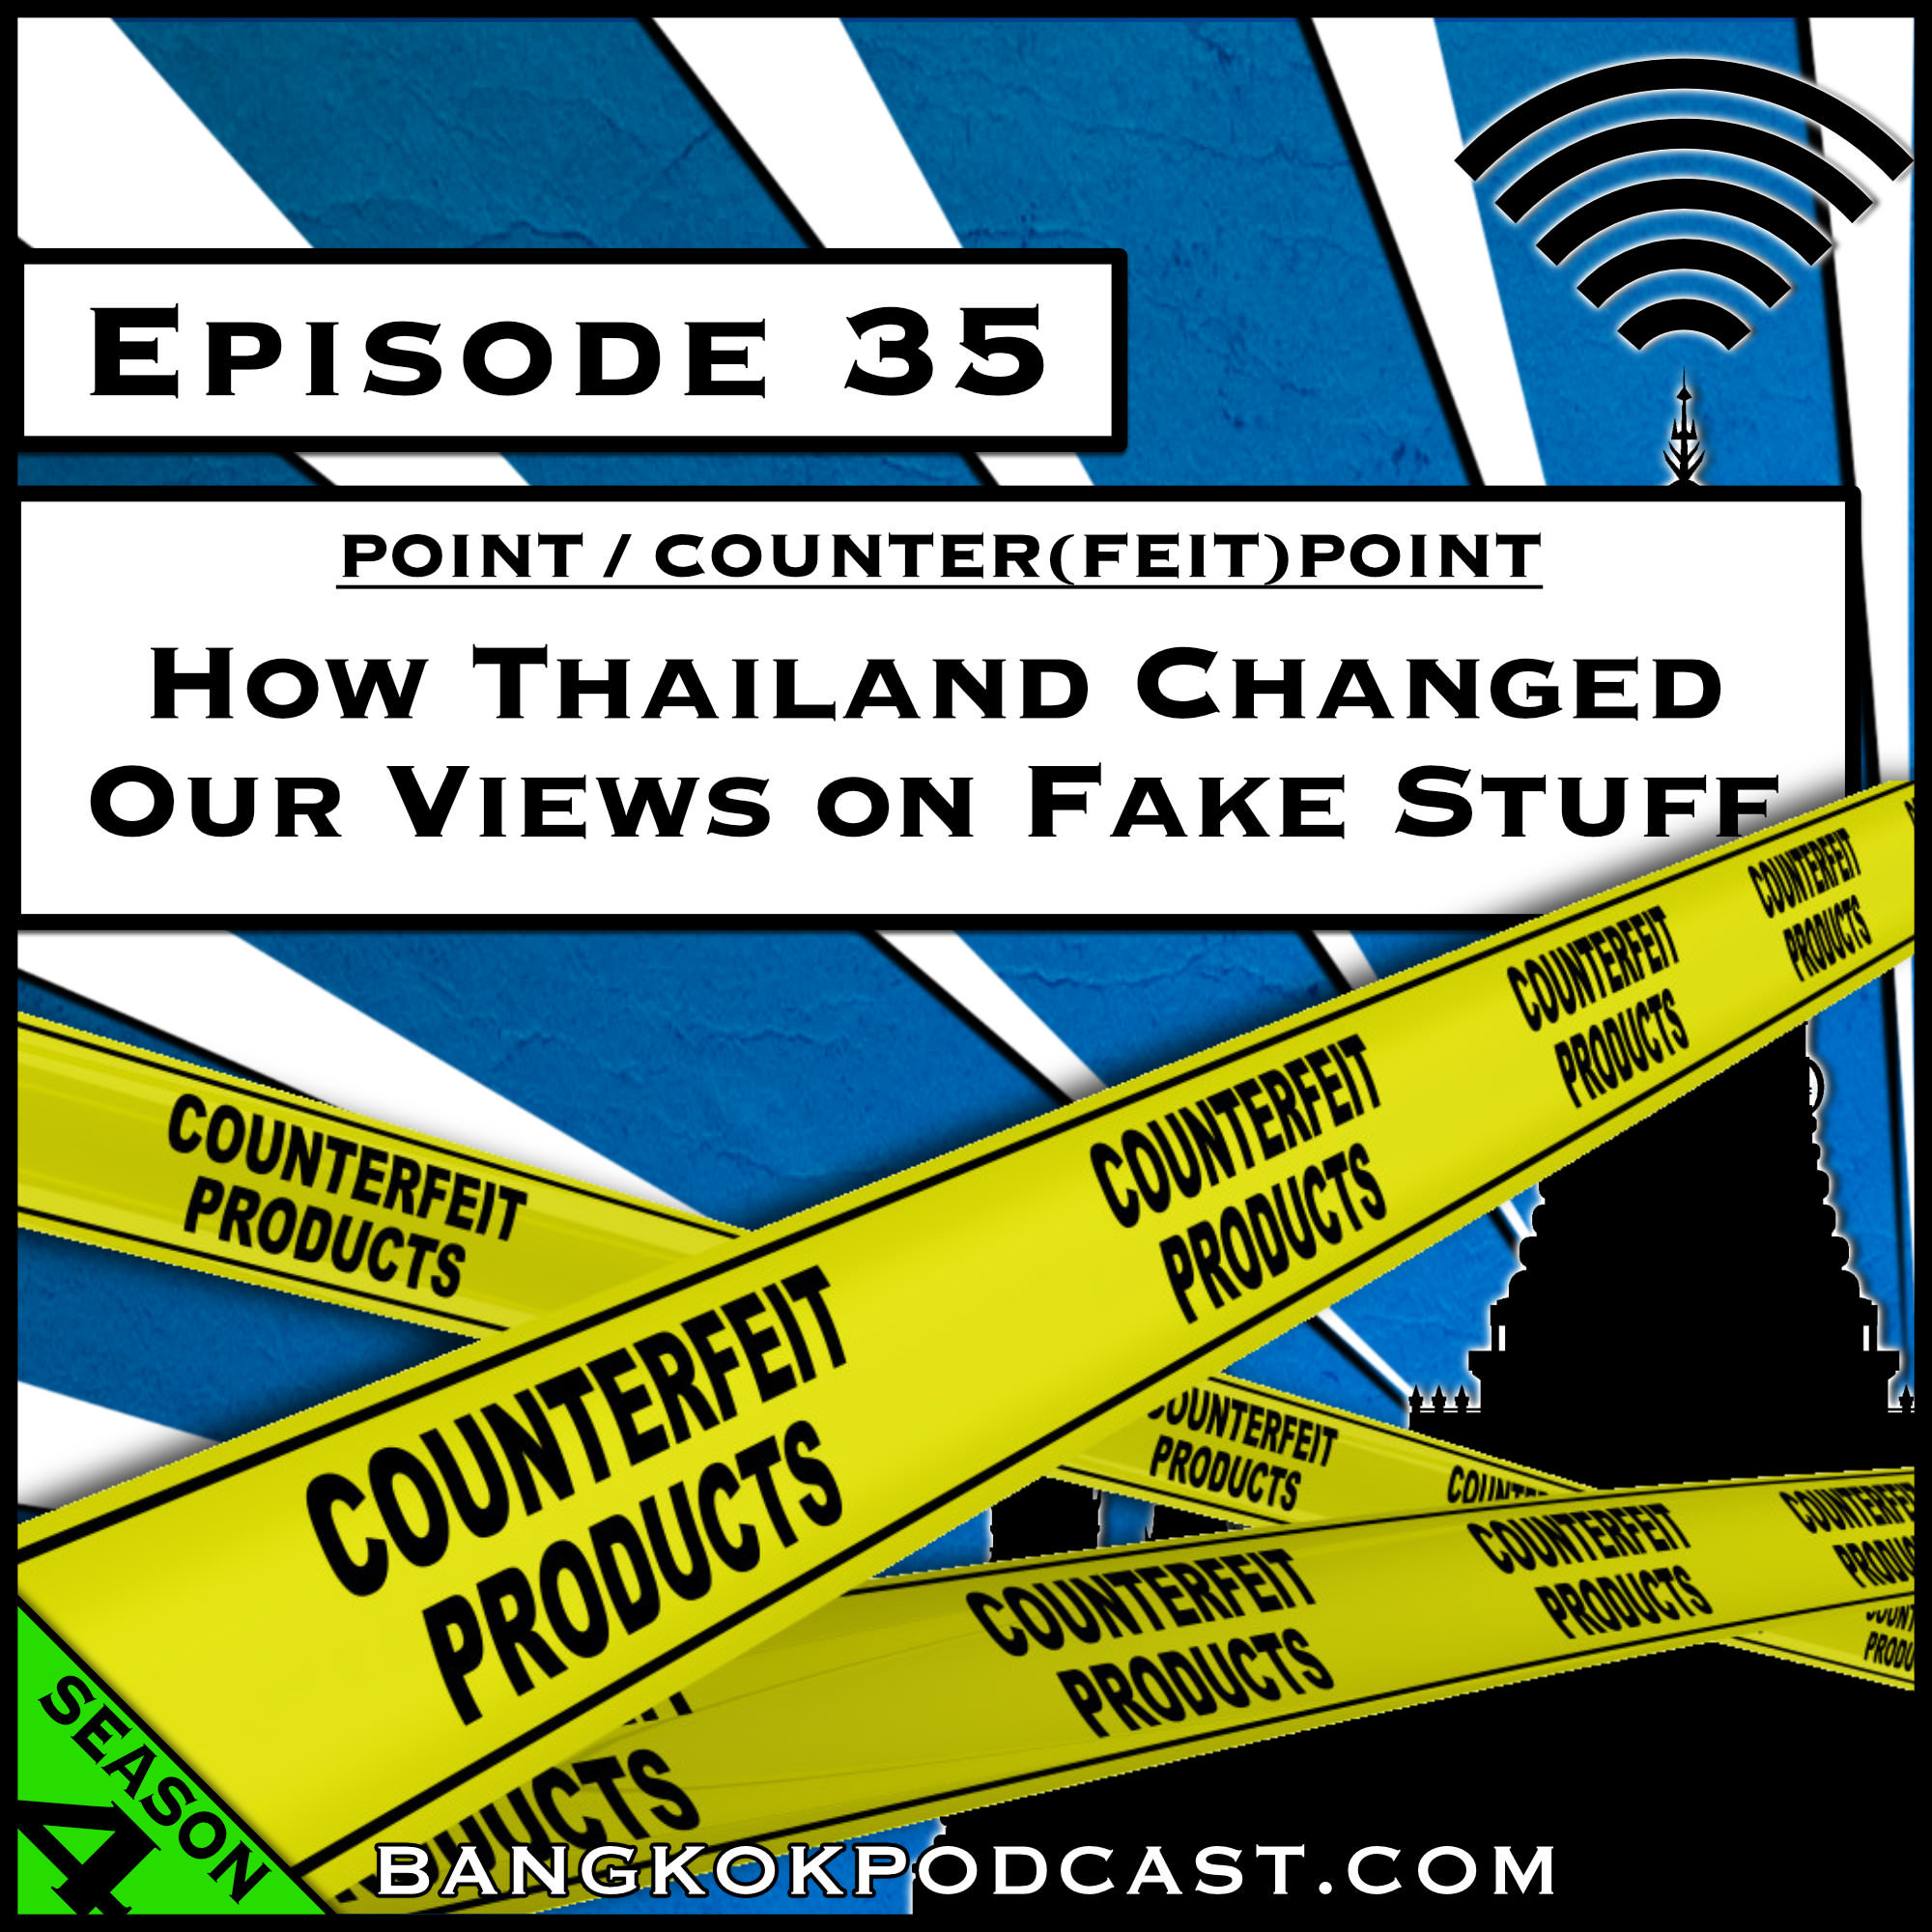 How Thailand Changed Our Views on Fake Stuff [Season 4, Episode 35]